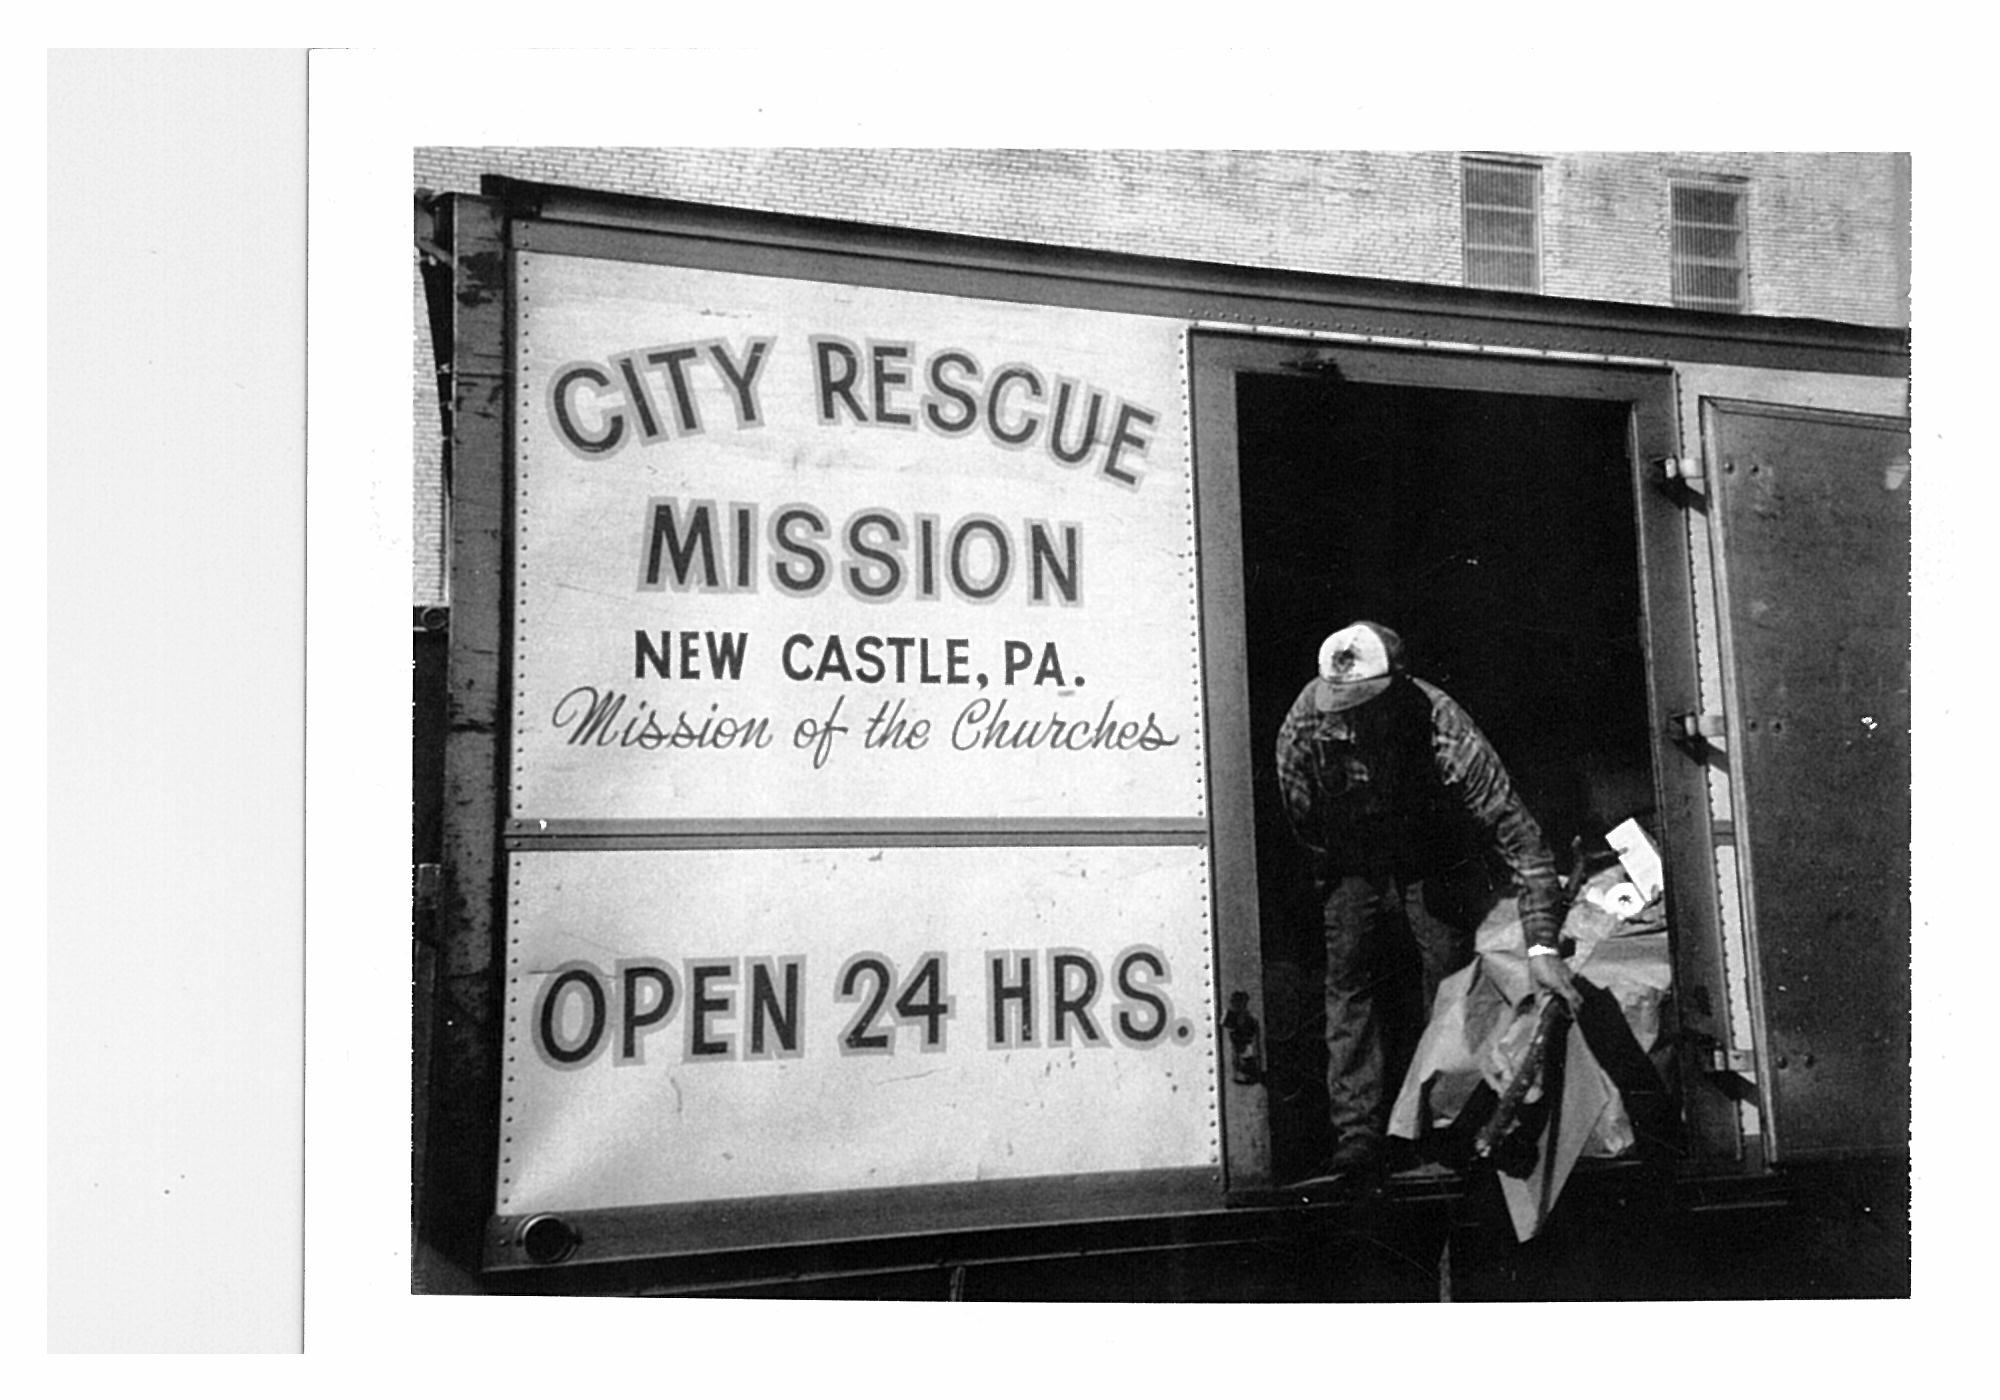 City Rescue Mission Truck Sign